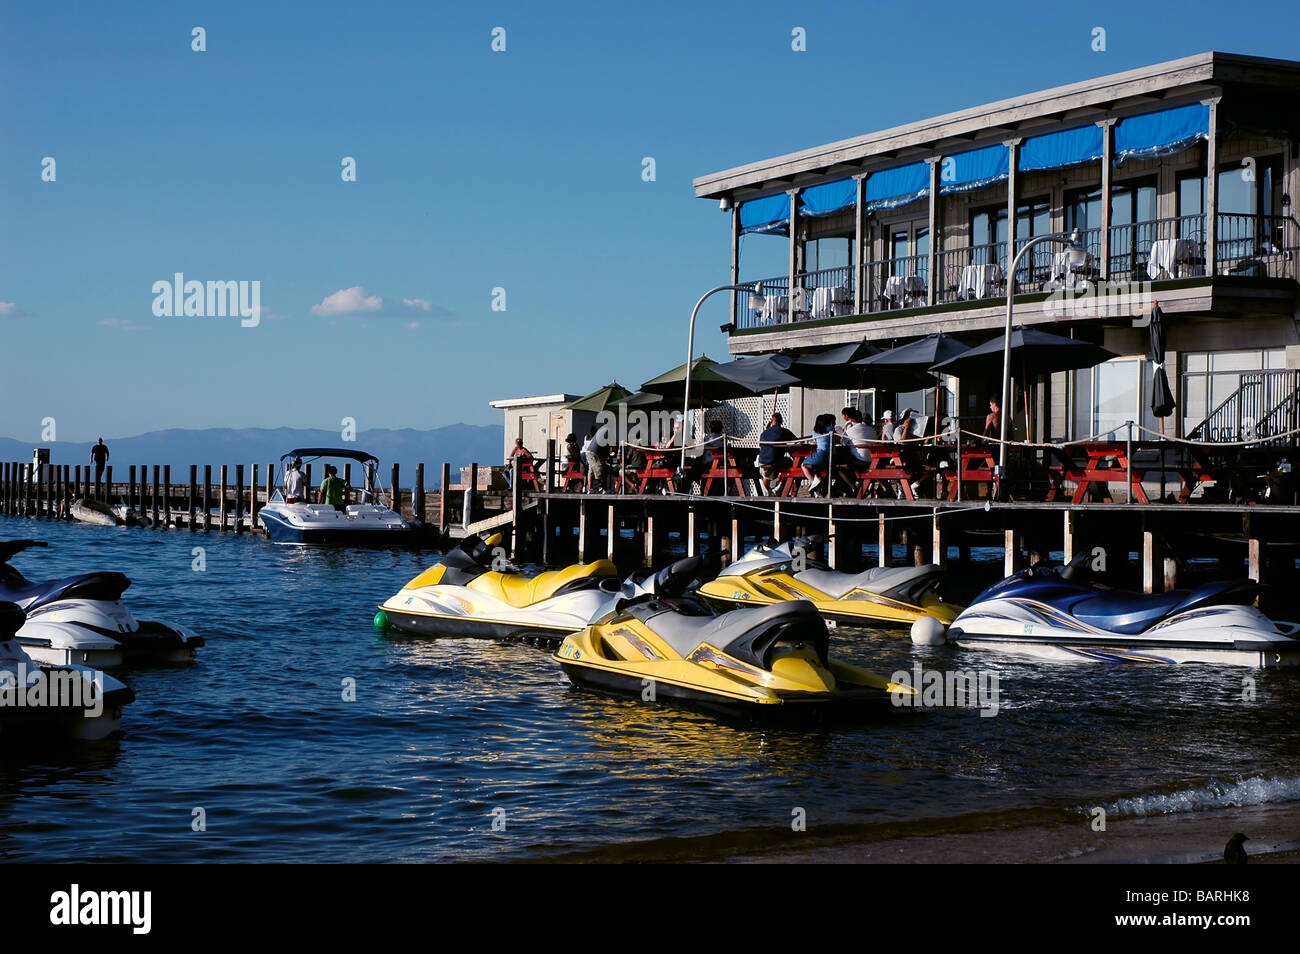 Diners eating at an outdoor restaurant near a jet ski rental business on a lake Stock Photo